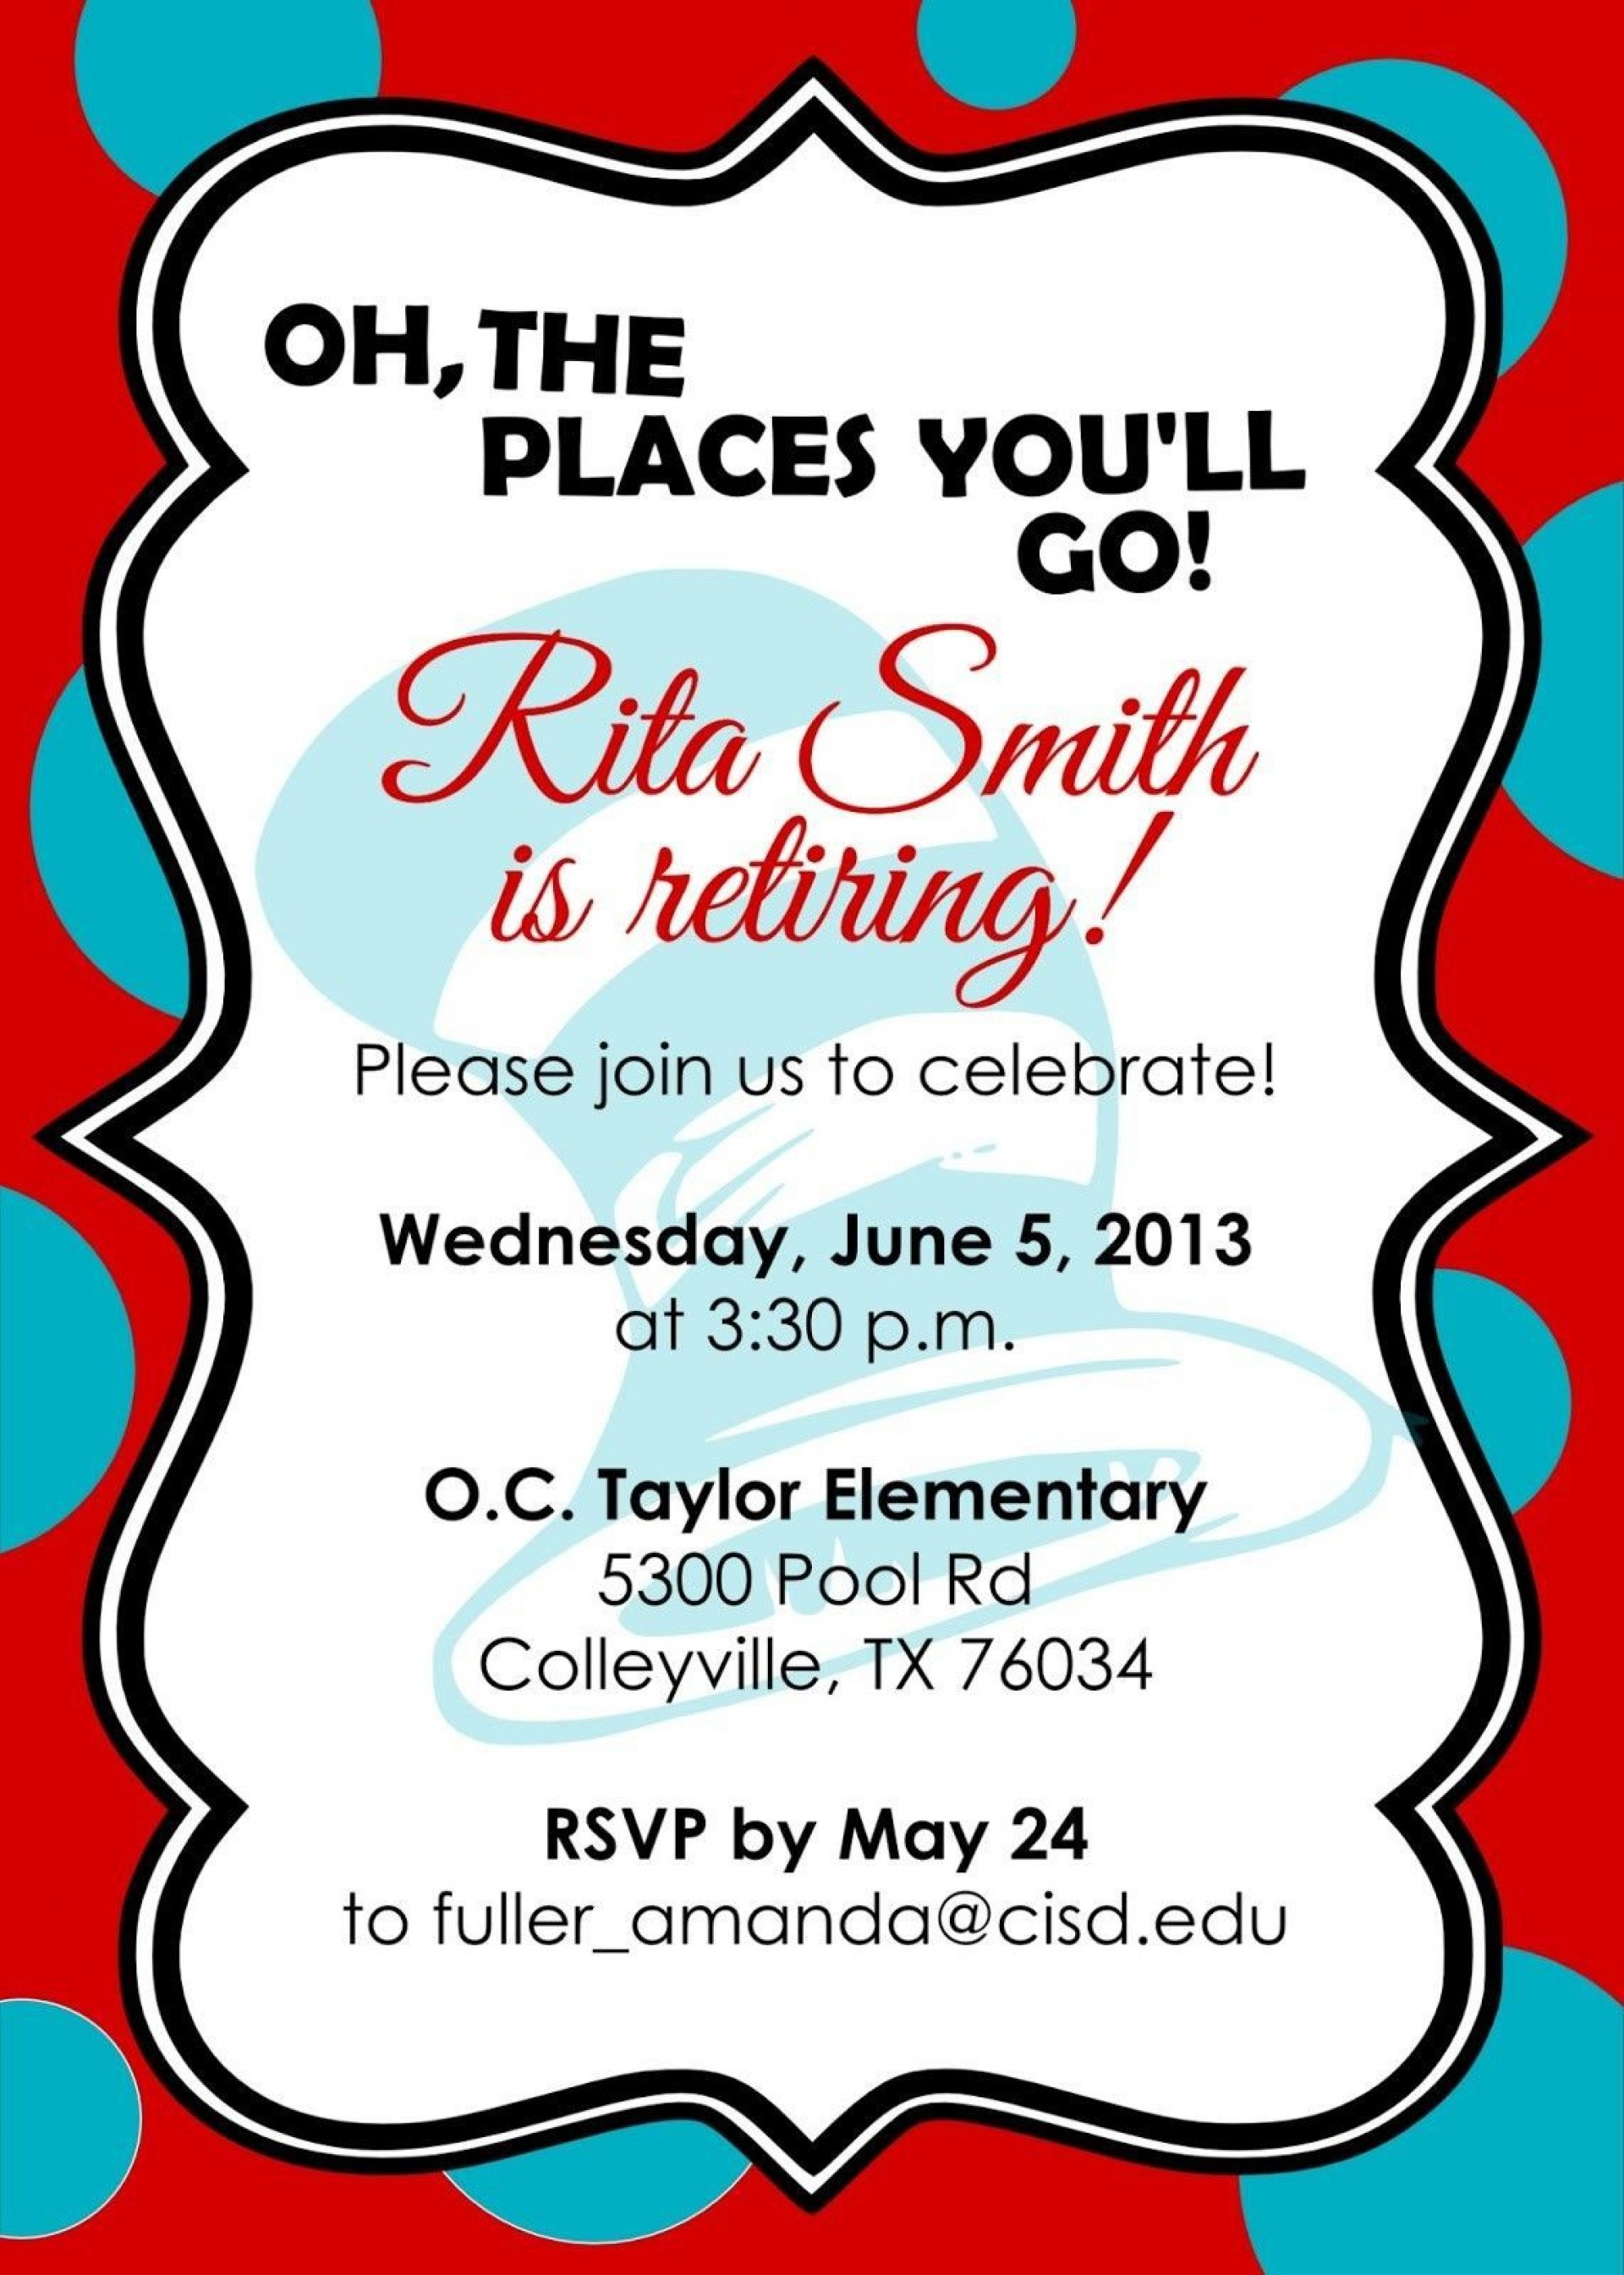 008 Breathtaking Retirement Party Invitation Template Free Example  M Word1920